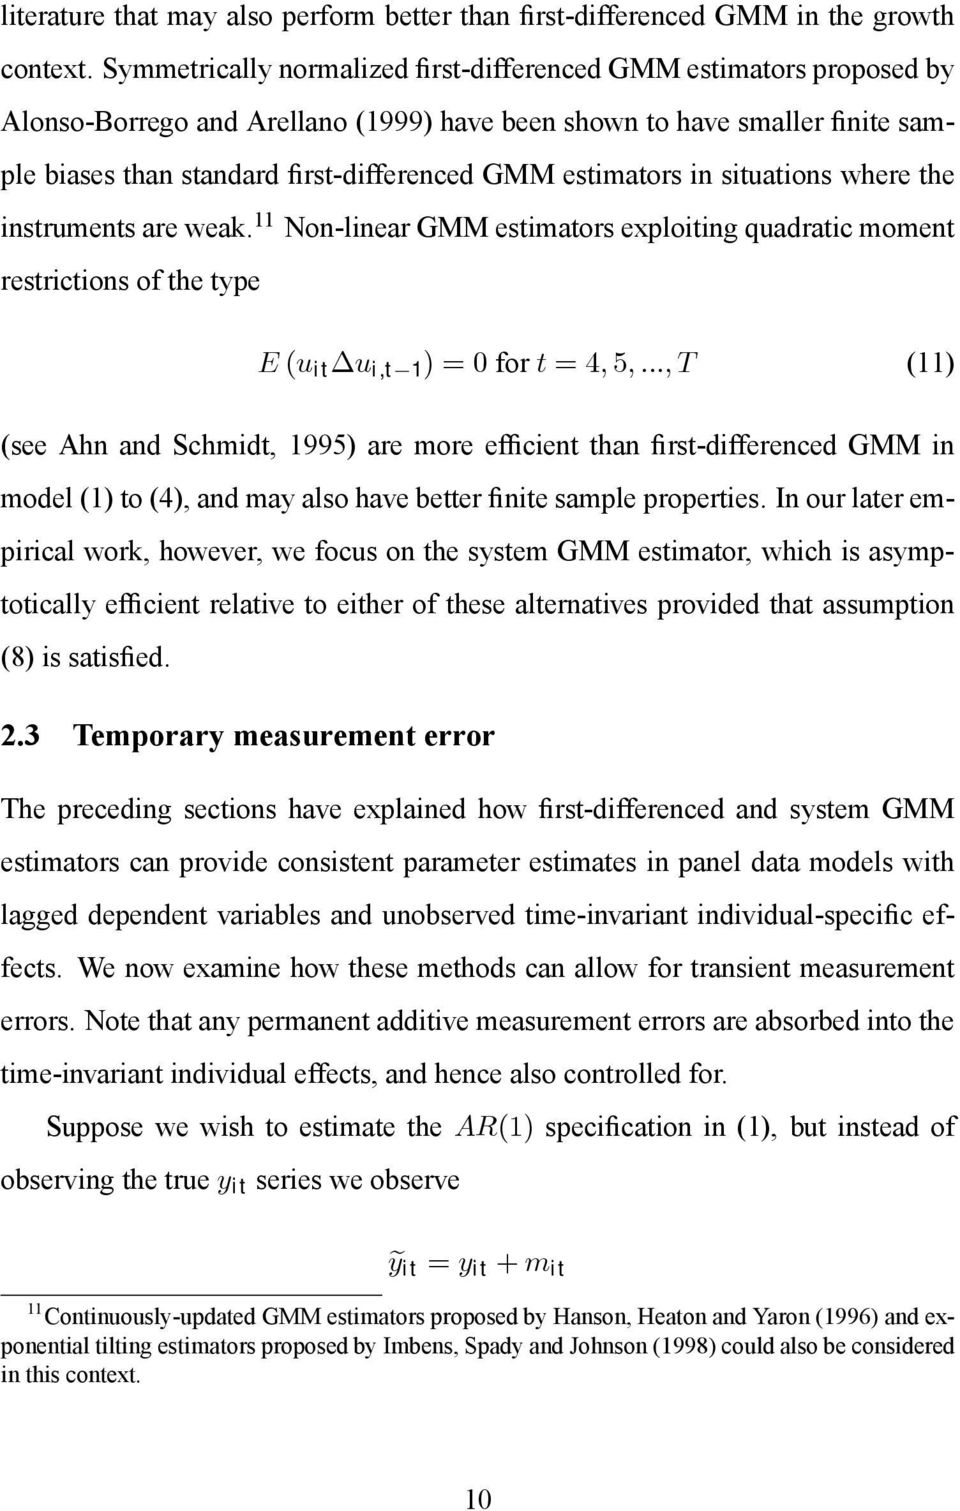 estimators in situations where the instruments are weak. 11 Non-linear GMM estimators exploiting quadratic moment restrictions of the type E (u it u i,t 1 )=0for t =4, 5,.